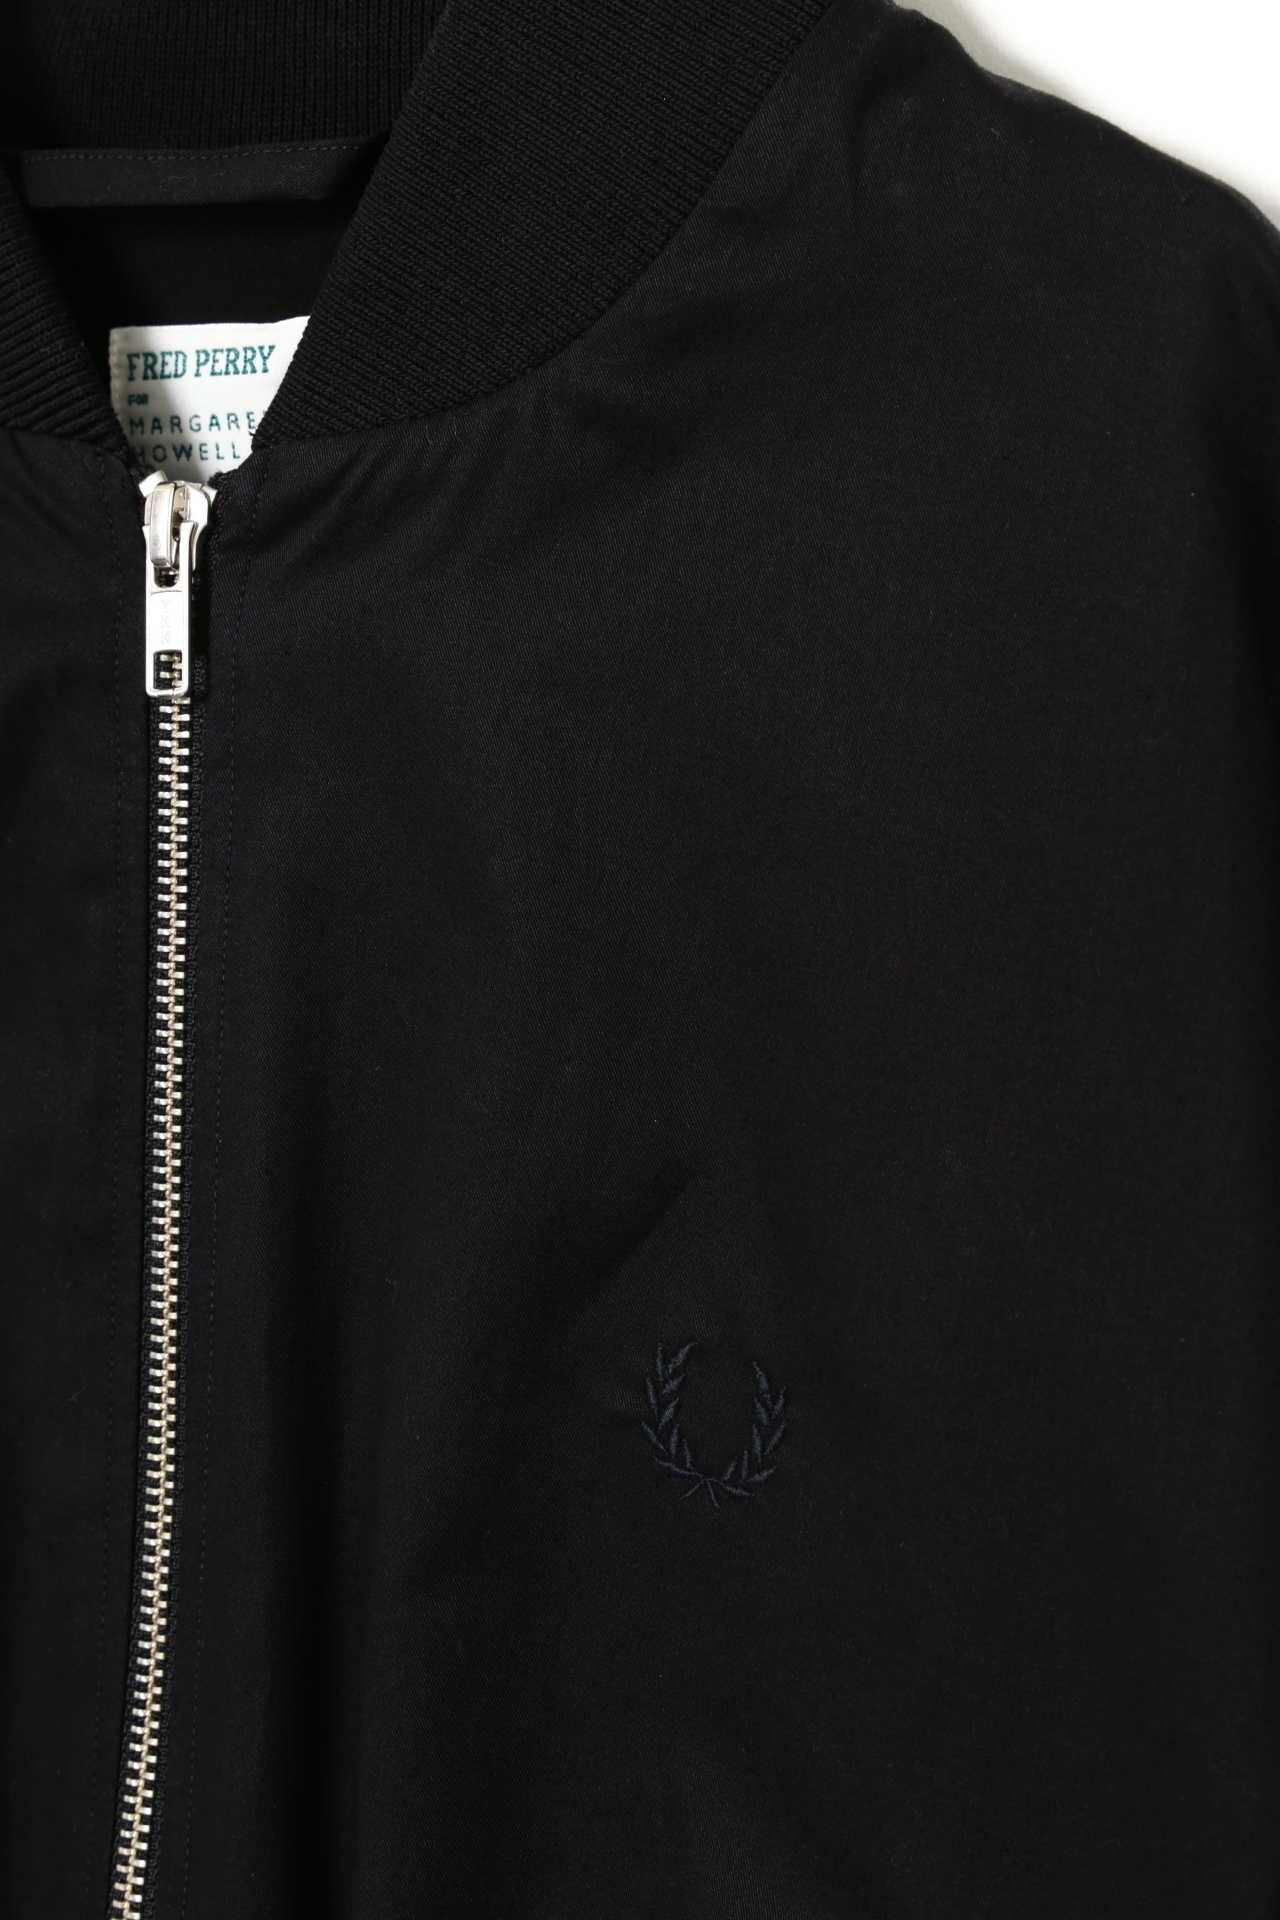 FINE COTTON TWILL(FRED PERRY FOR MARGARET HOWELL)6